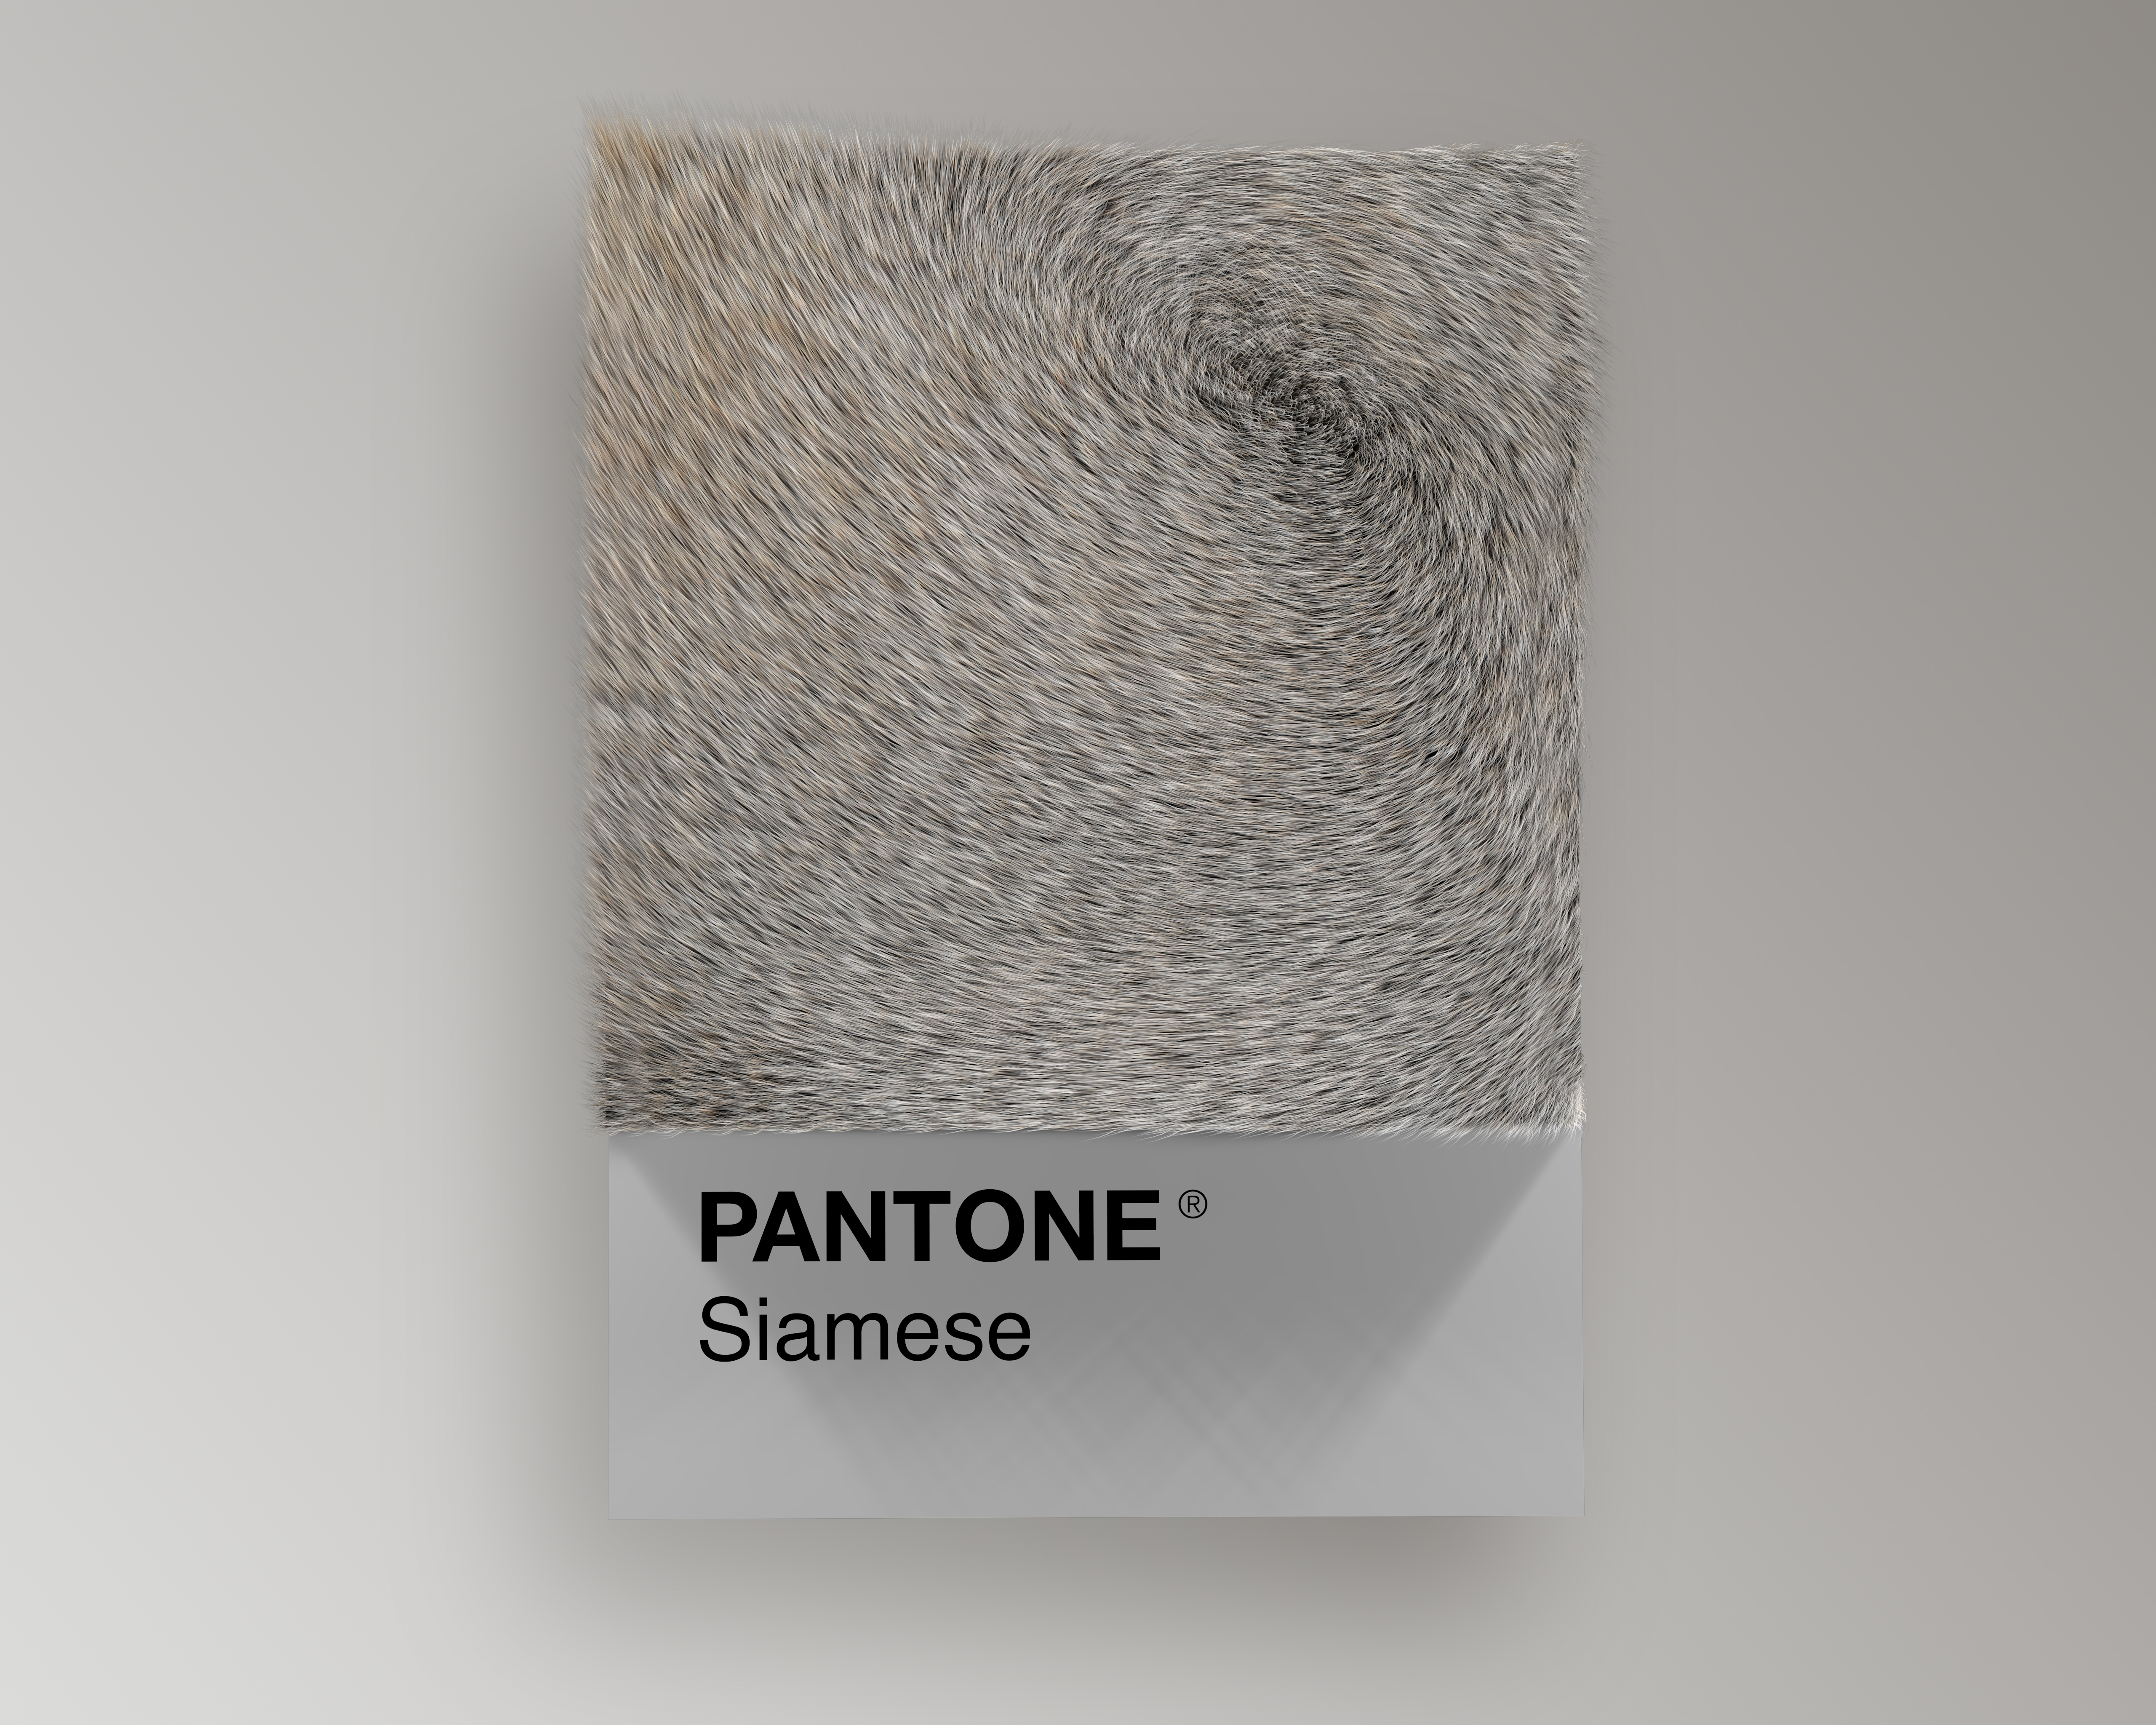 Alessio D'Amico - Cat breeds as Pantone | Collater.al 7